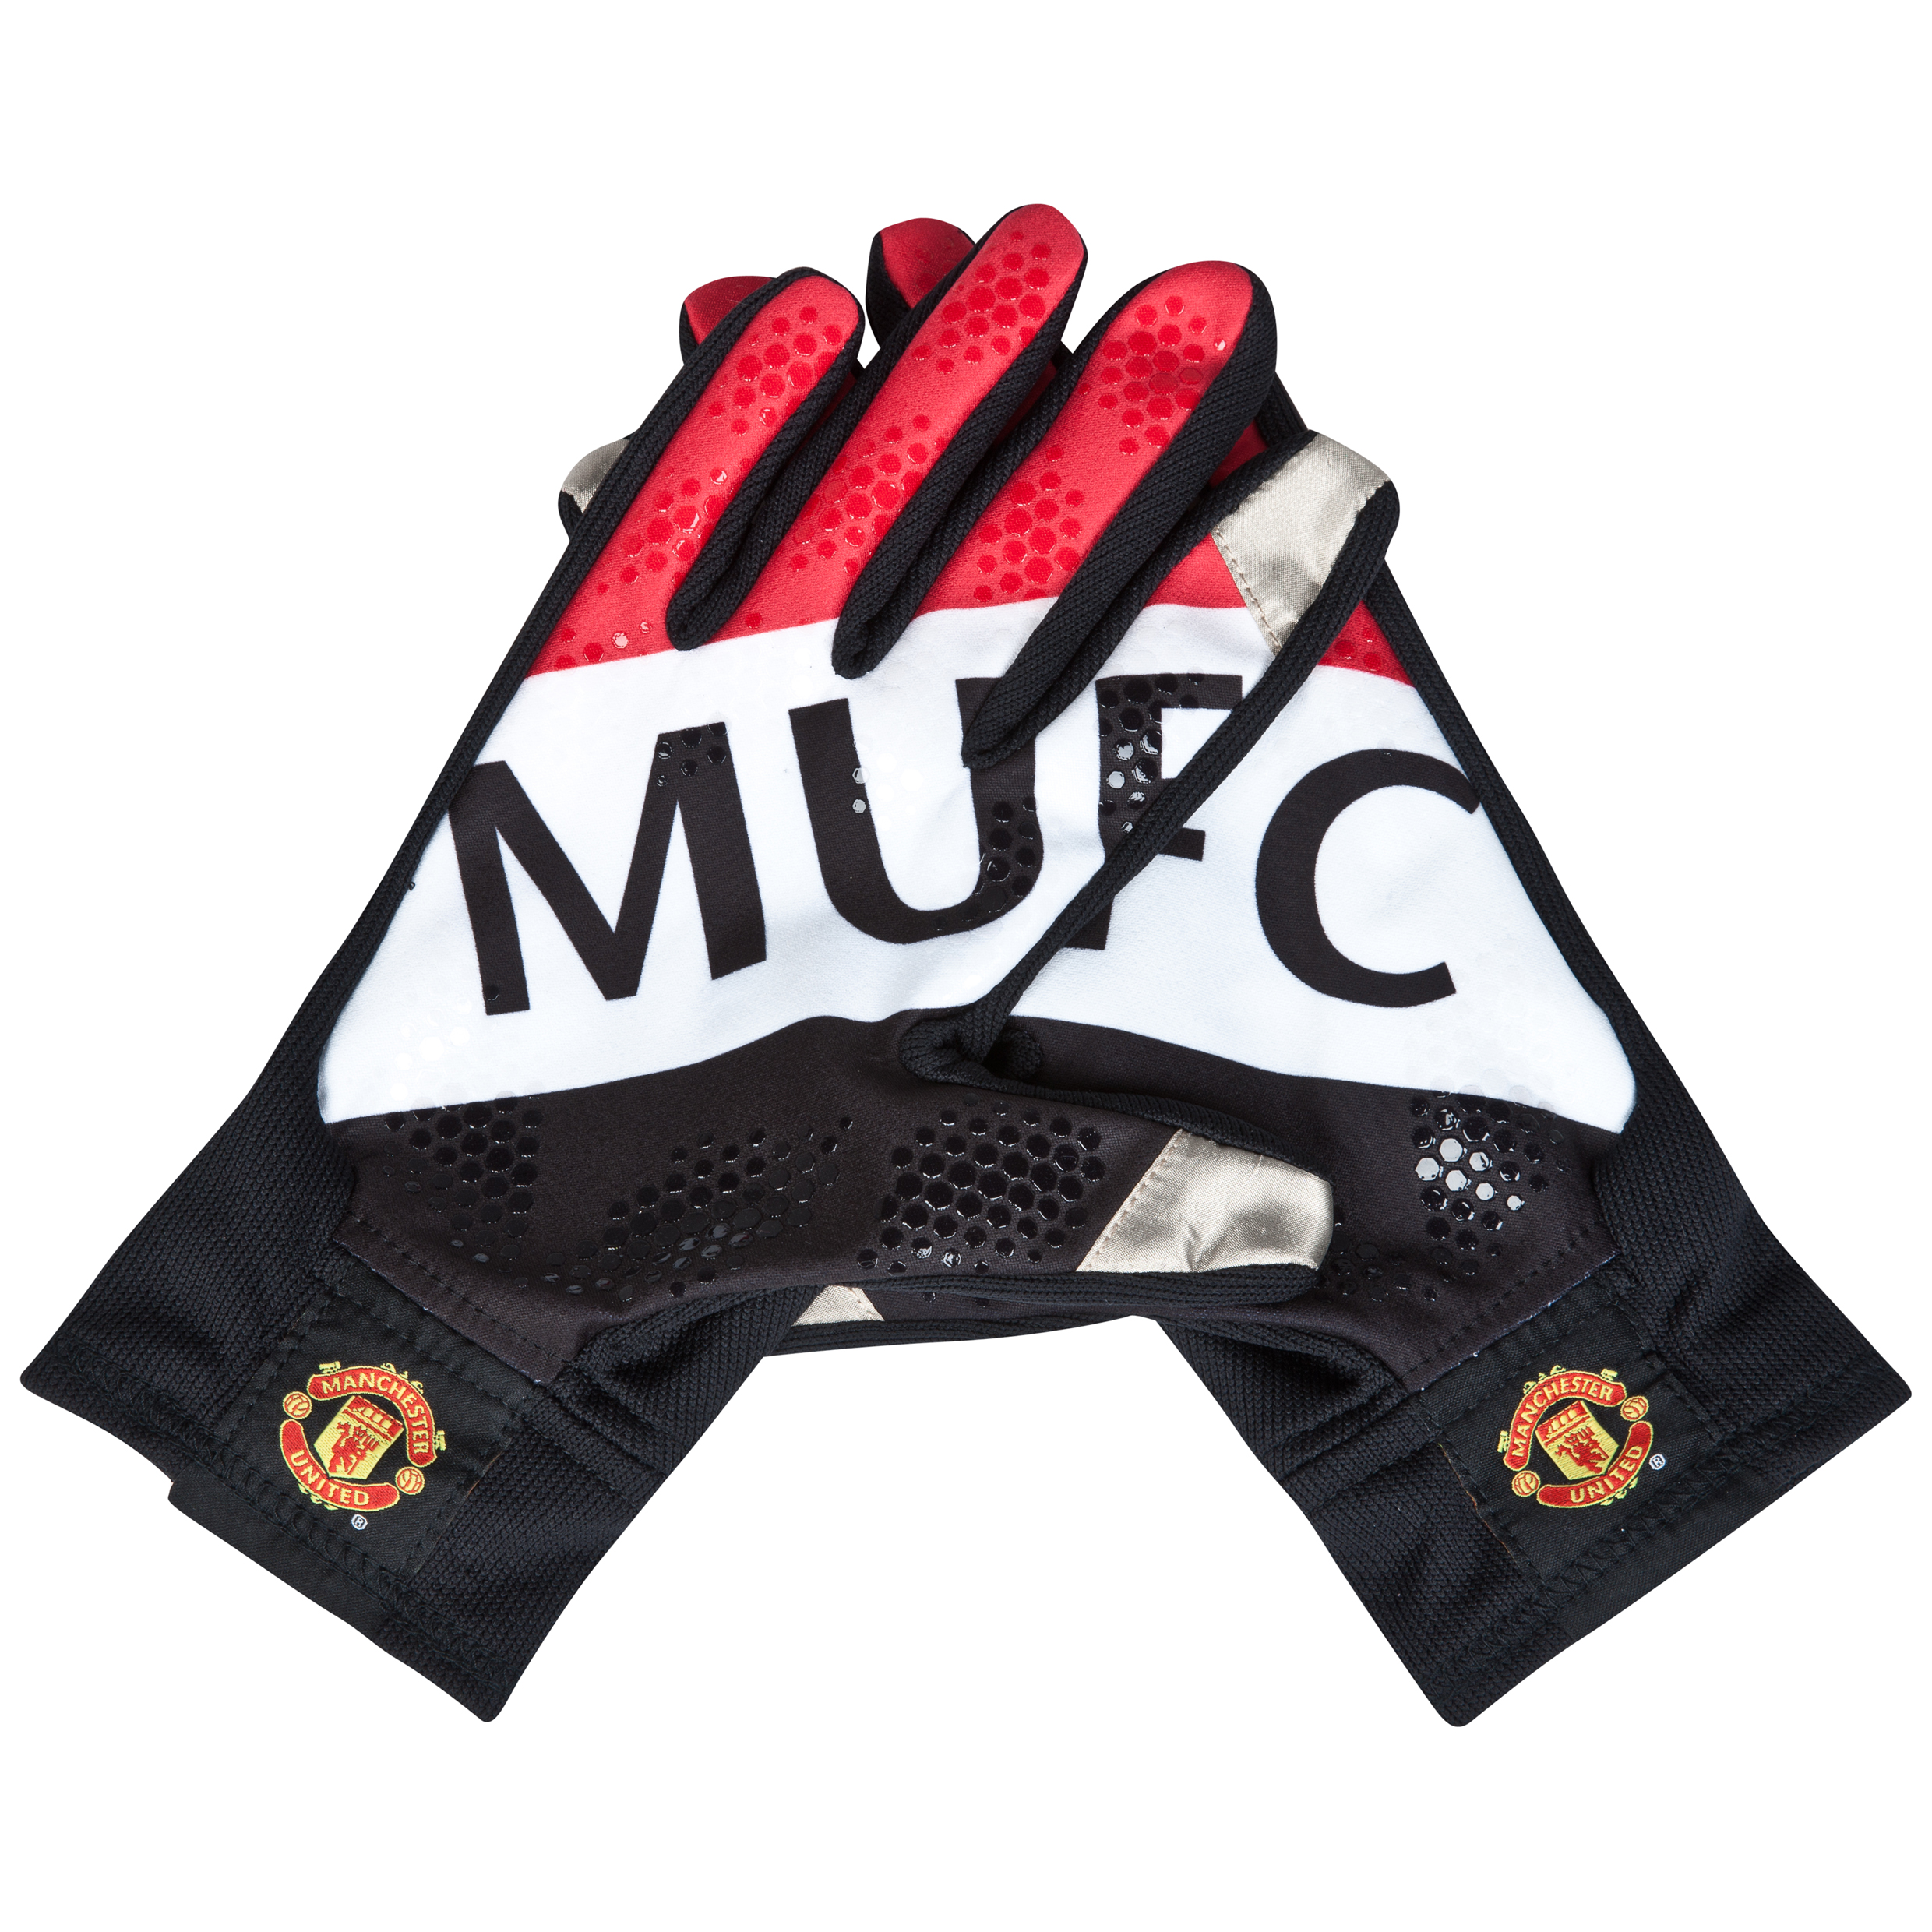 Manchester United Fan Glove - Black/White/Red Black